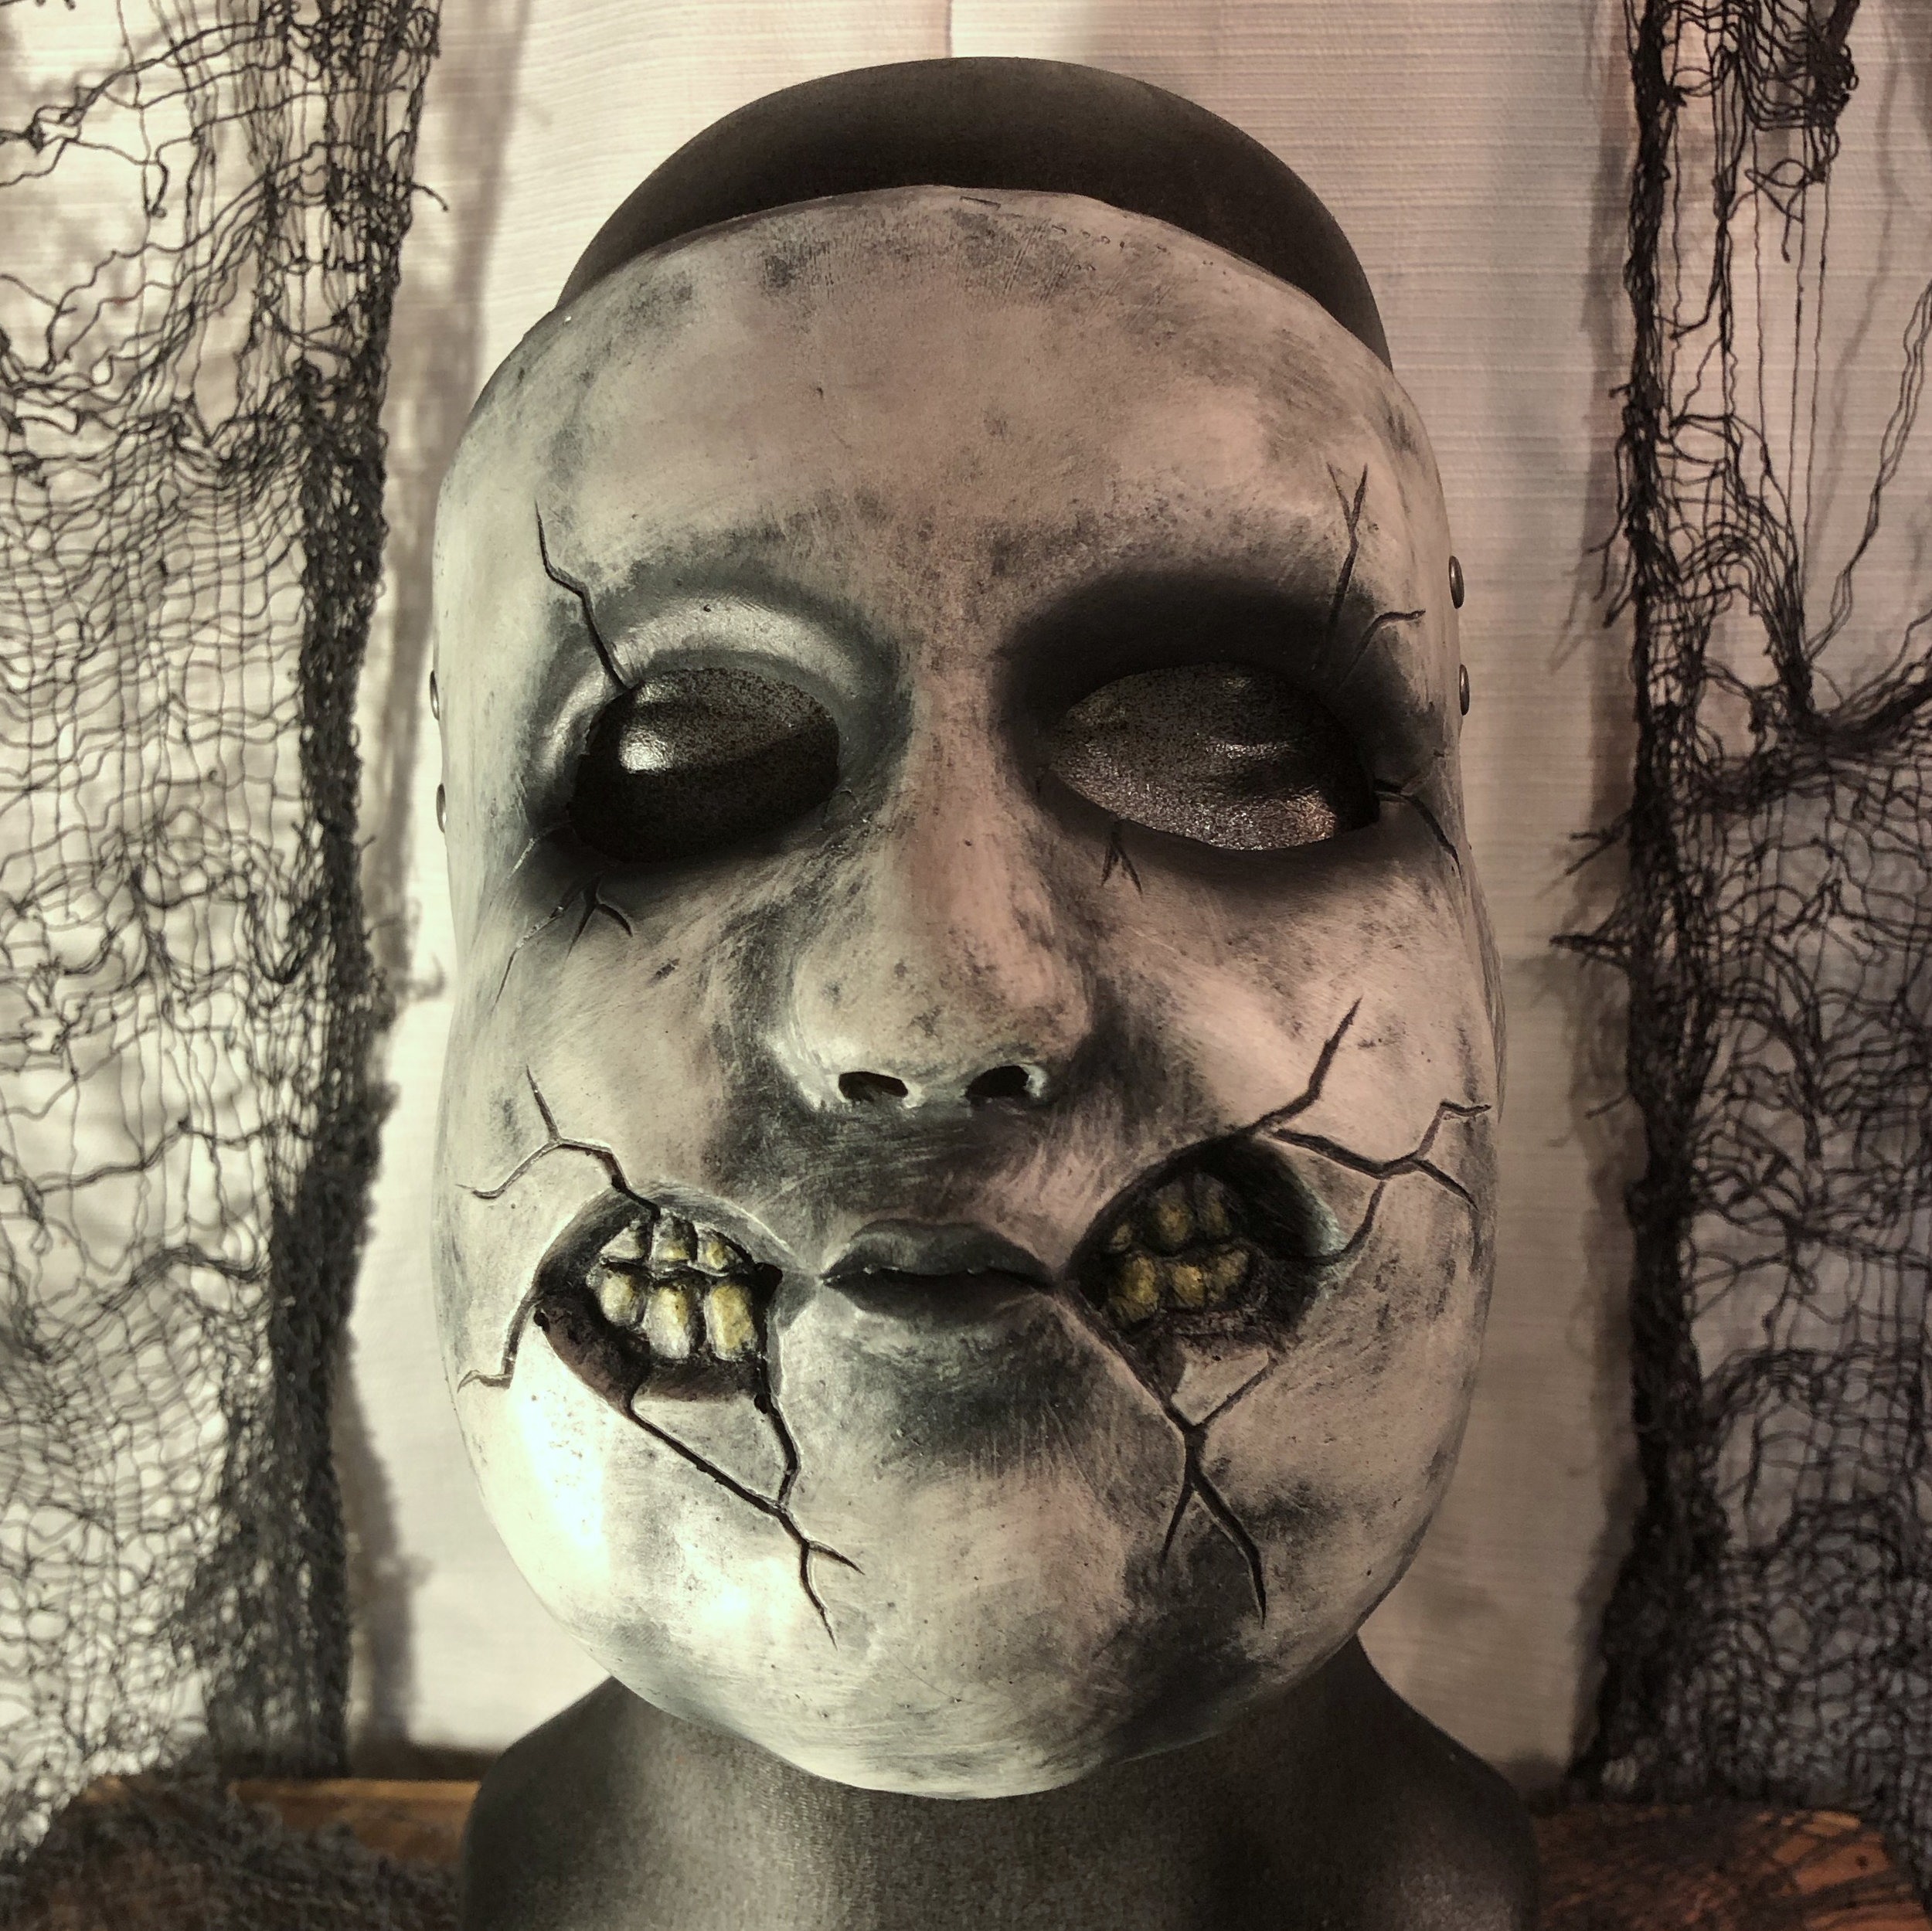 Dolly    $80.00   This broken doll mask will fit most adults, but is on the smaller side.  When worn by a large man, the juxtaposition can be quite disturbing.  100% Natural Latex Mask